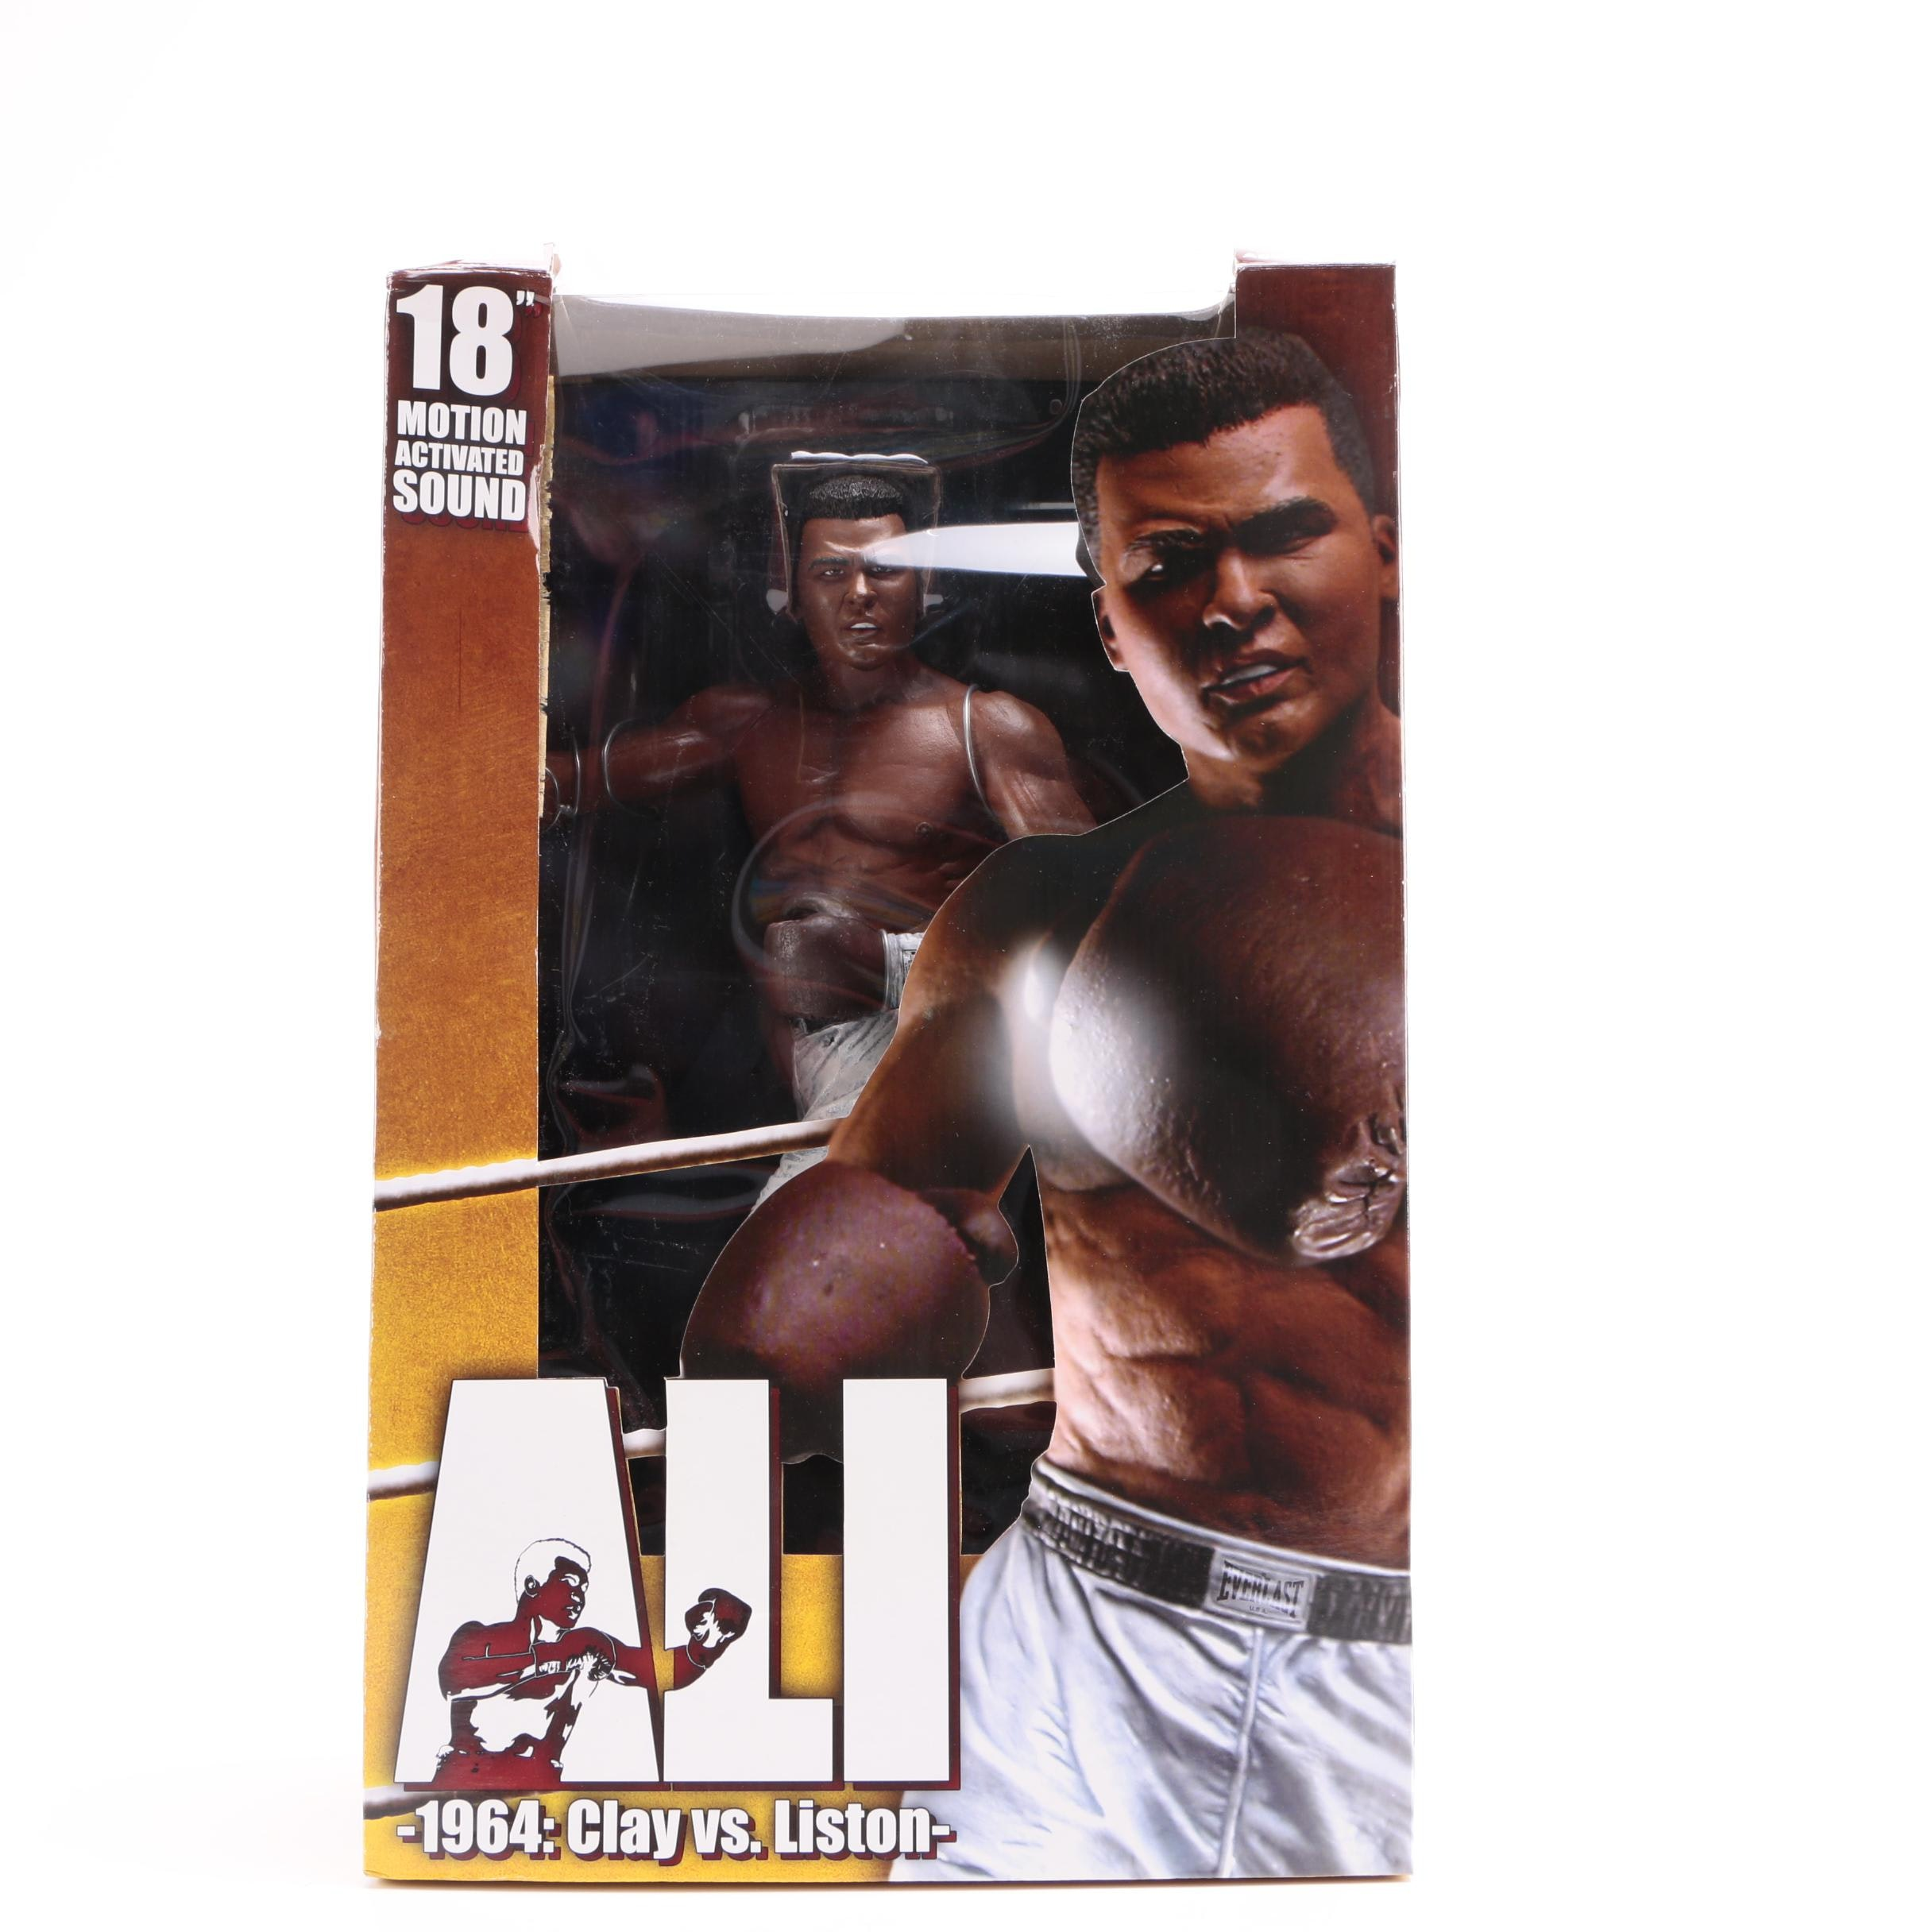 Muhammad Ali 1964: Clay Vs. Liston Motion Activated Action Figure